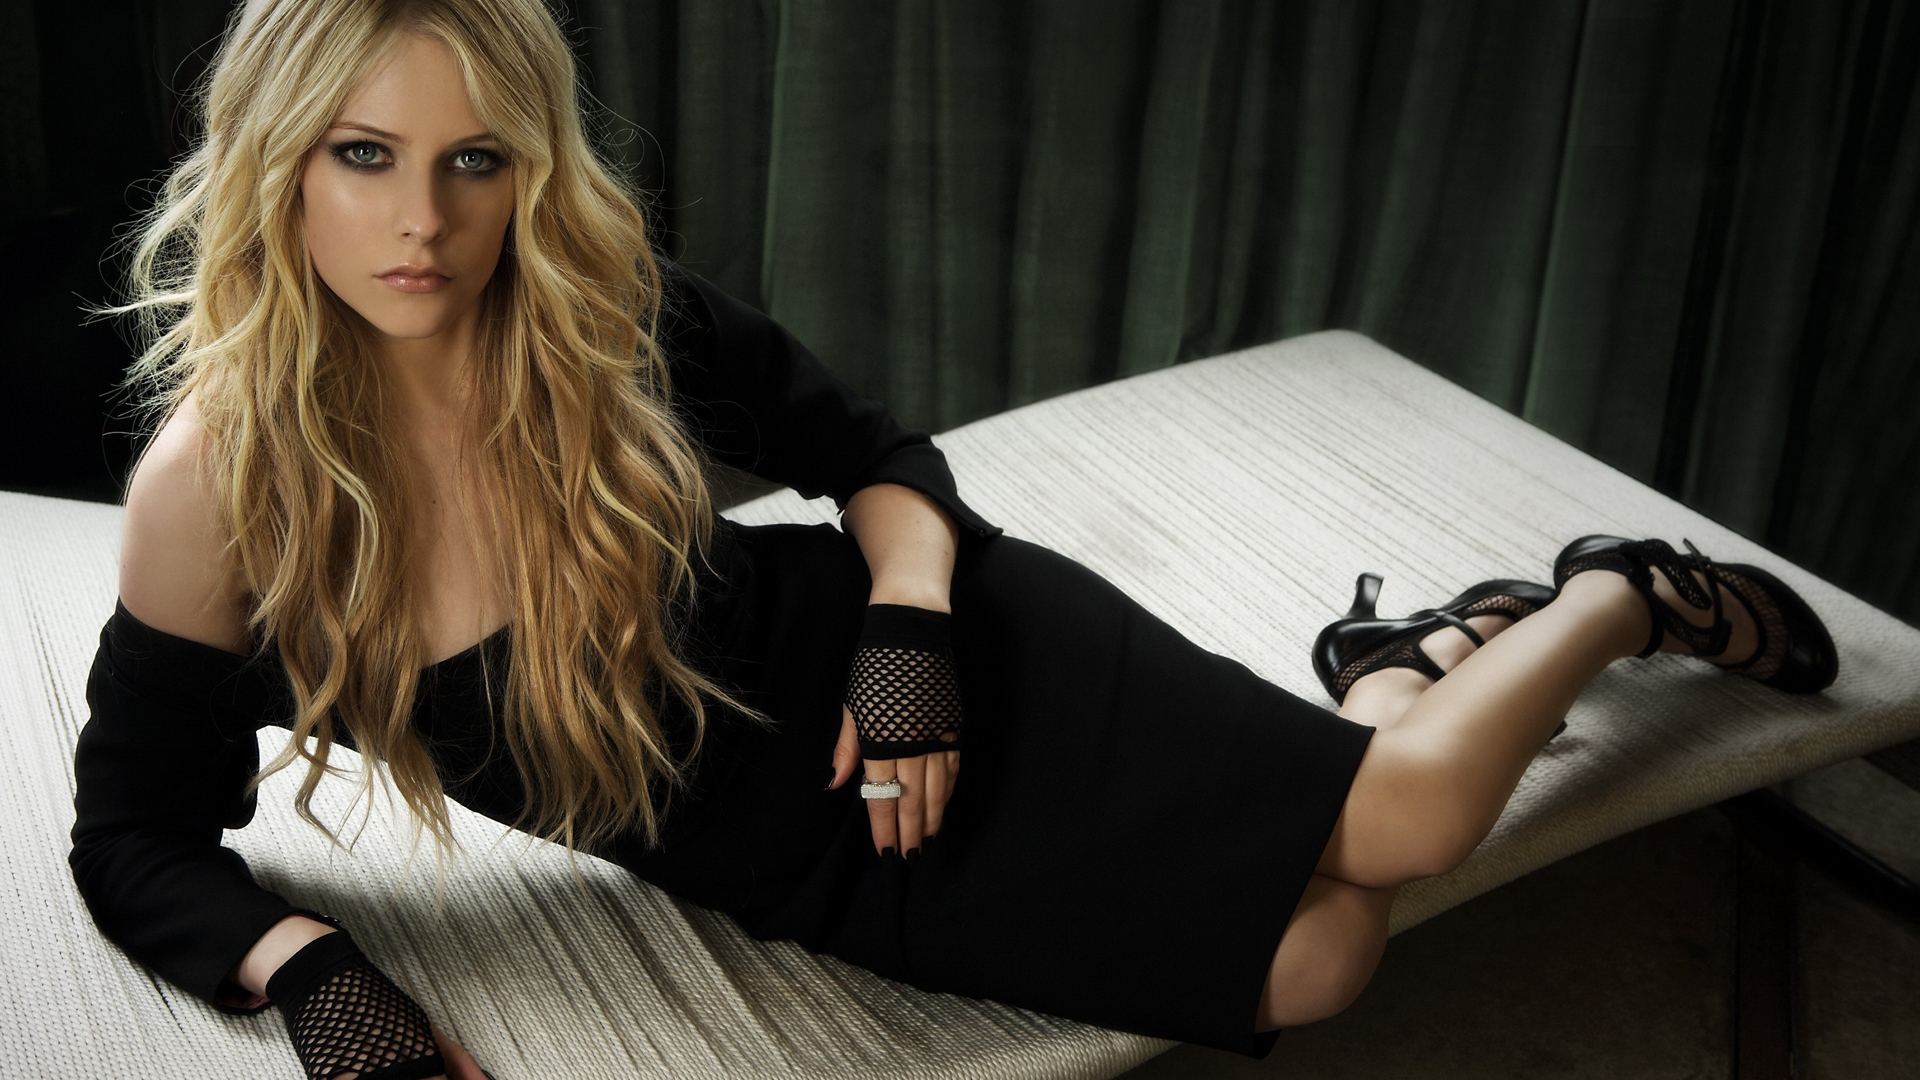 Avril Lavigne Hd Wallpaper Background Image 1920x1080 Id